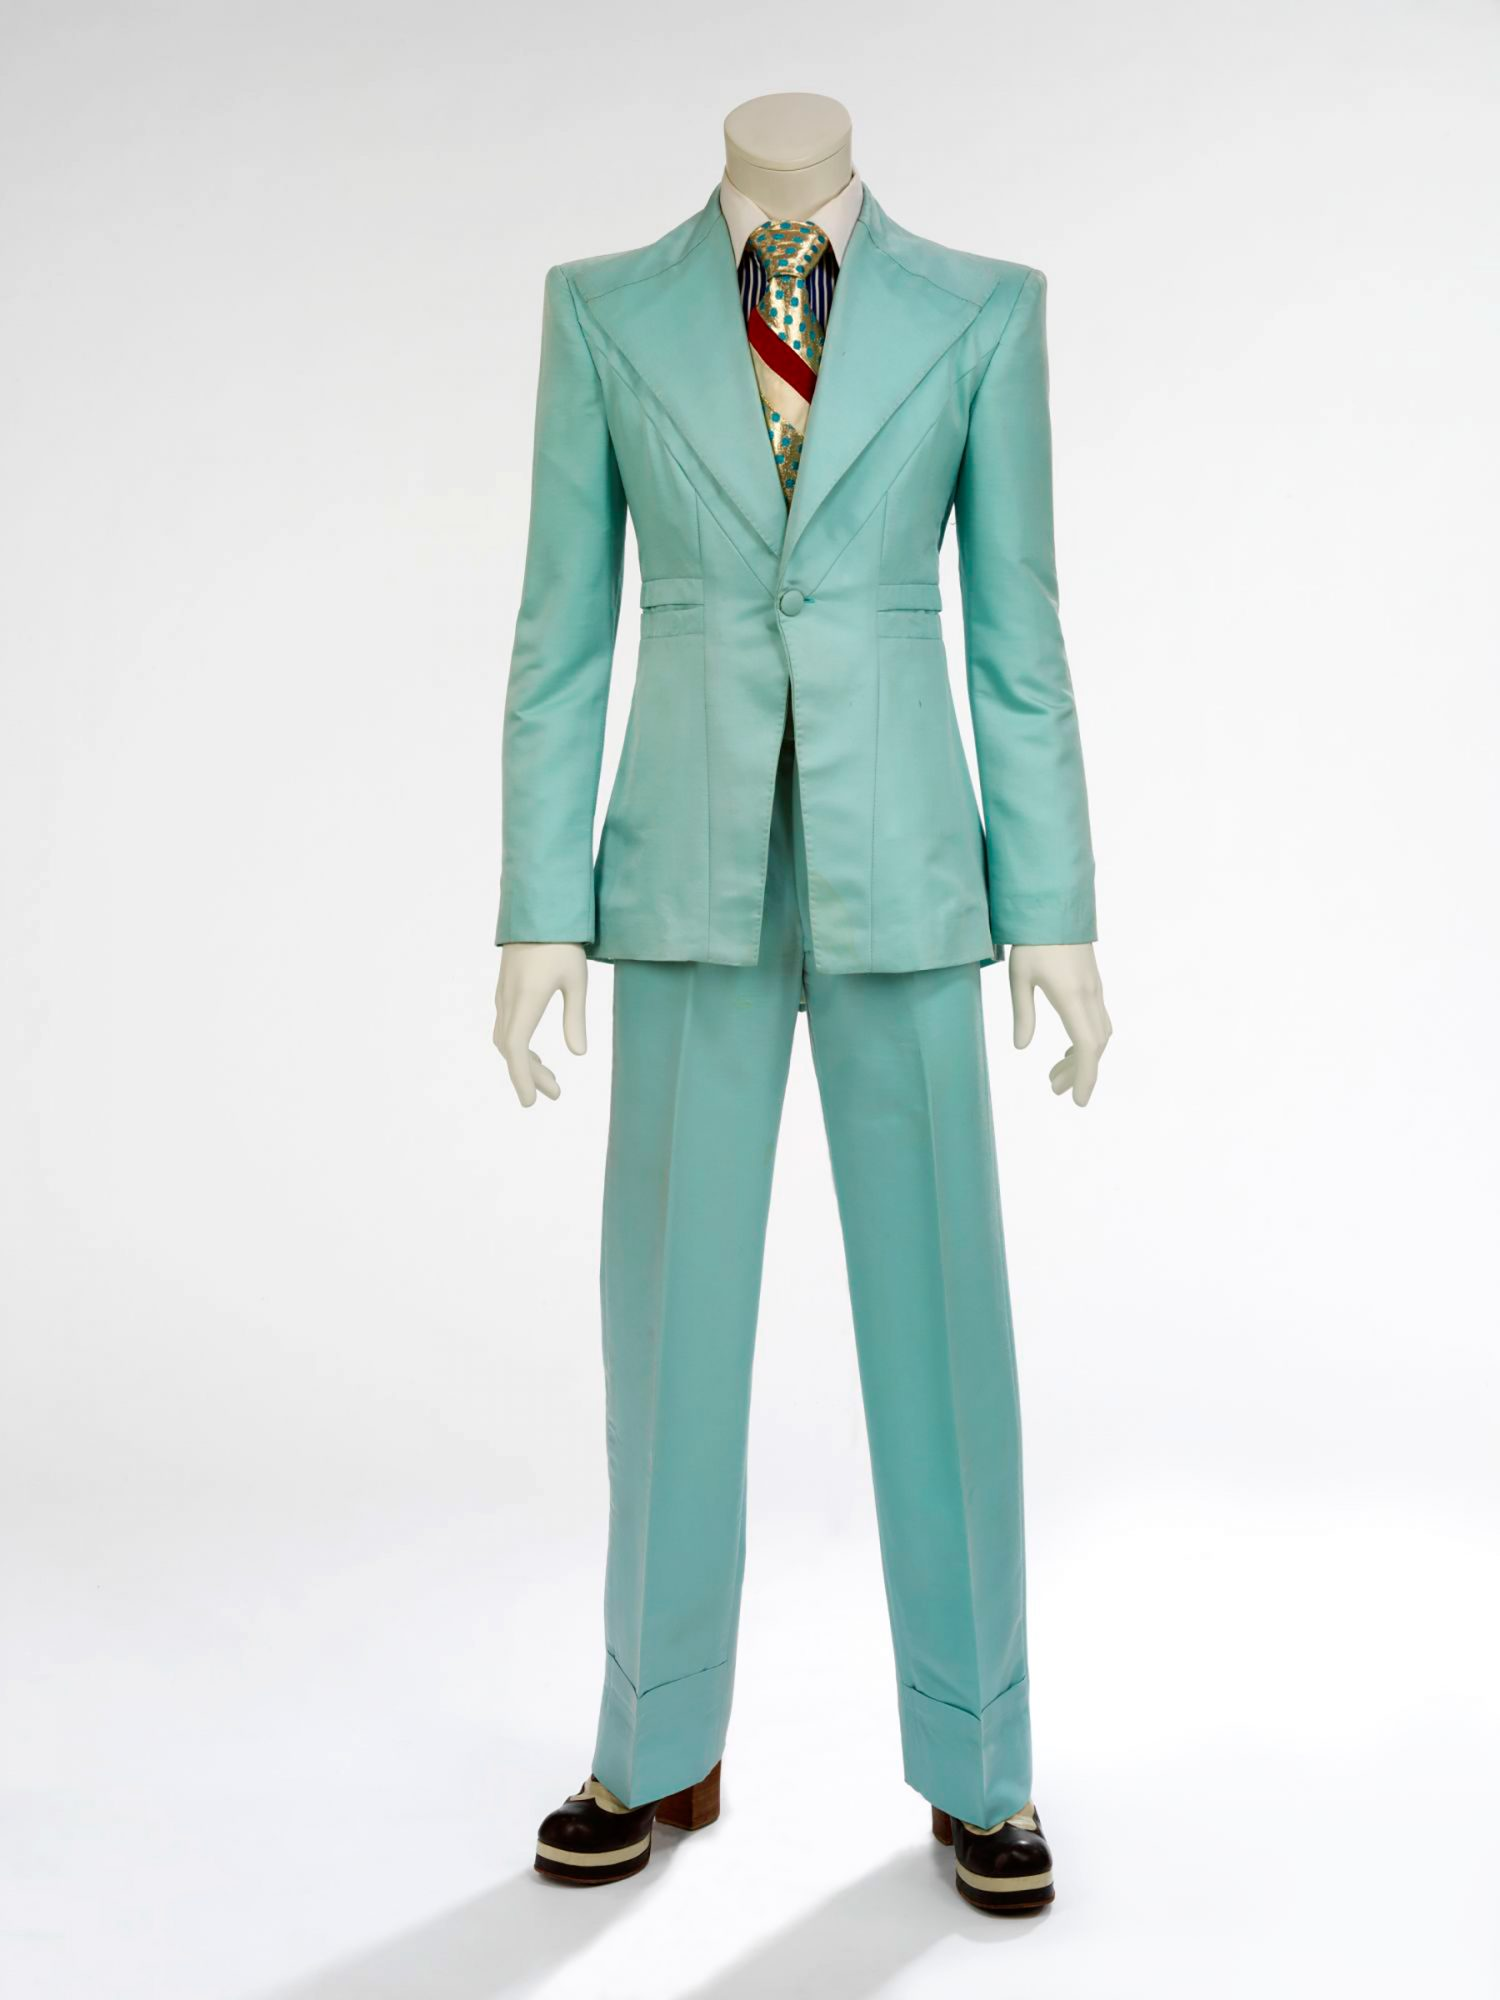 Ice-blue-suit,-1972.-Designed-by-Freddie-Burretti-for-the-'Life-on-Mars'-video